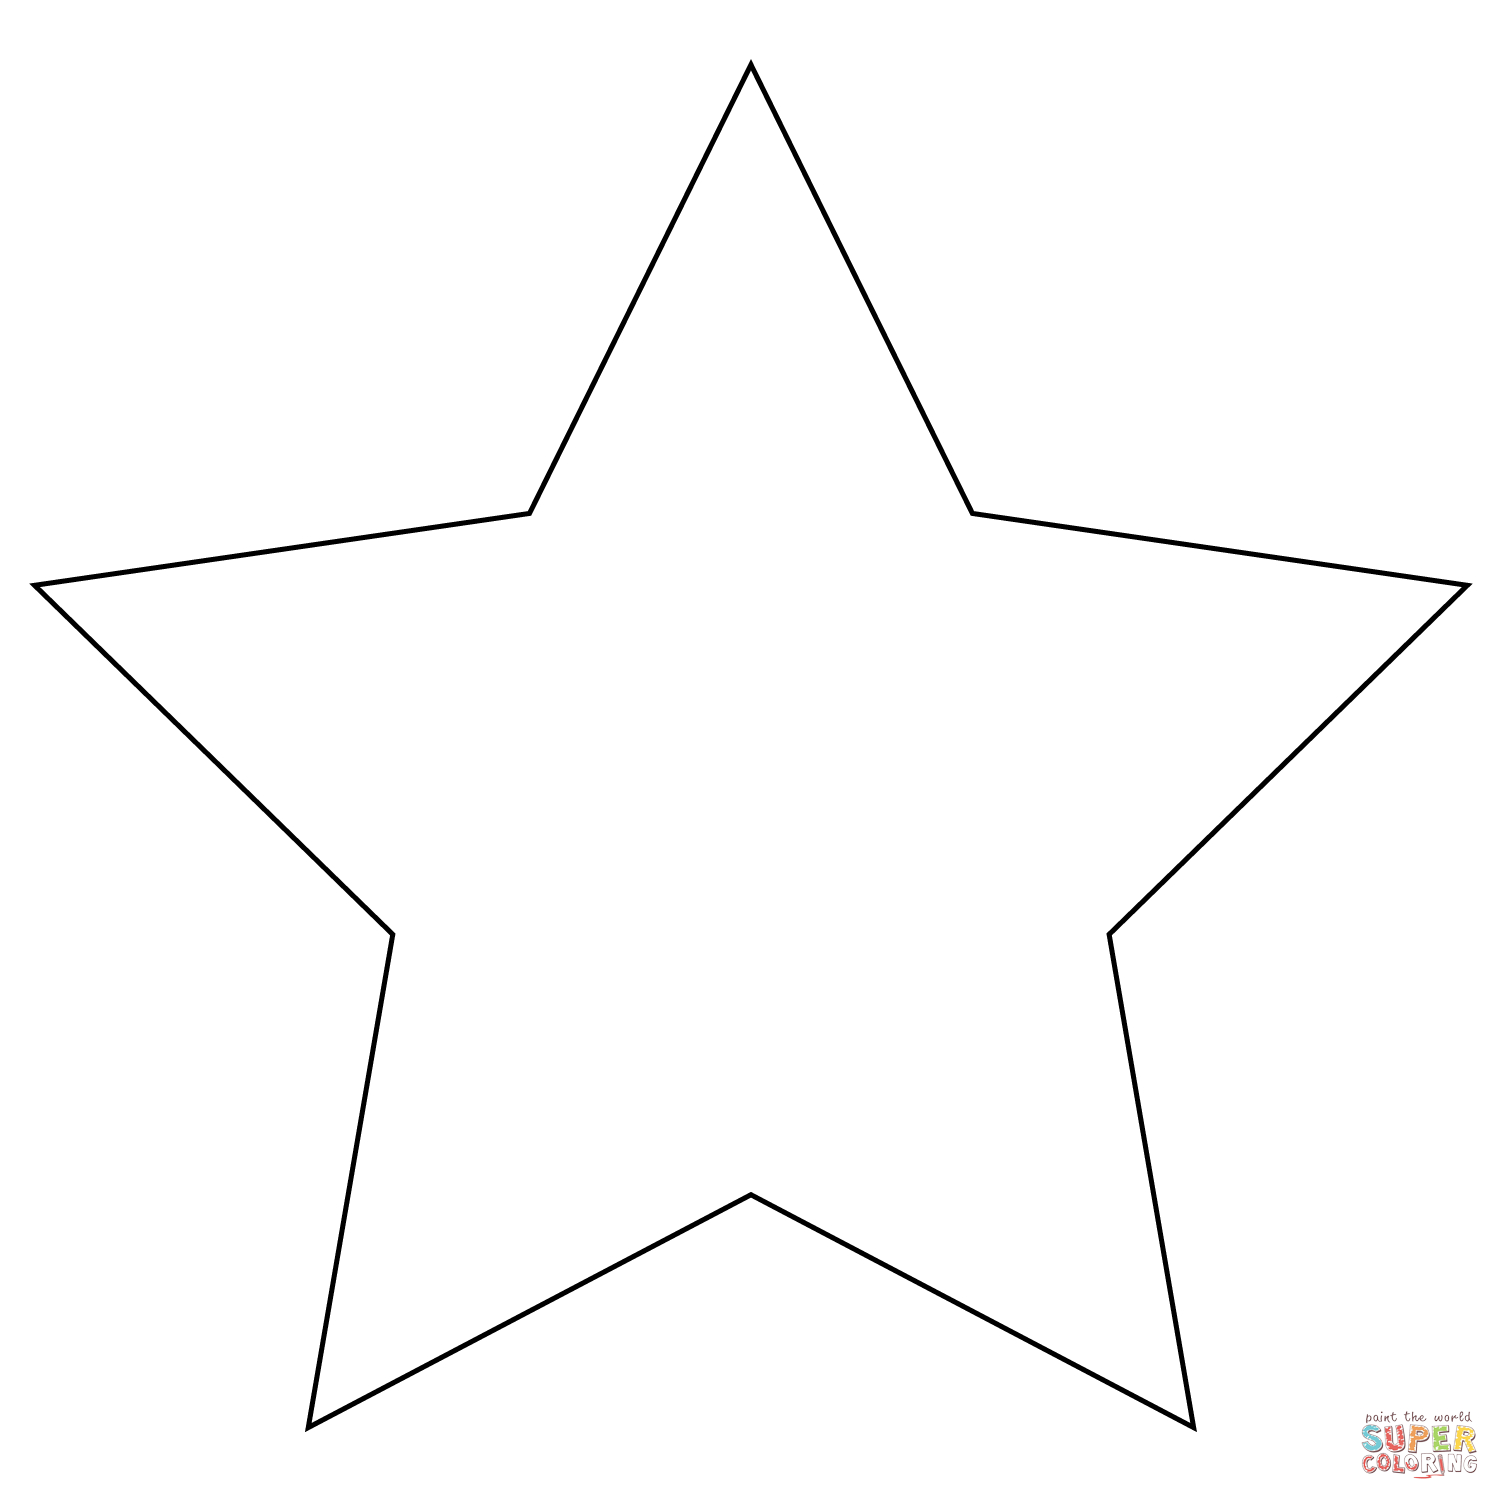 Coloring Page Of A Star Five Pointed Star Coloring Page Free Printable Coloring Pages